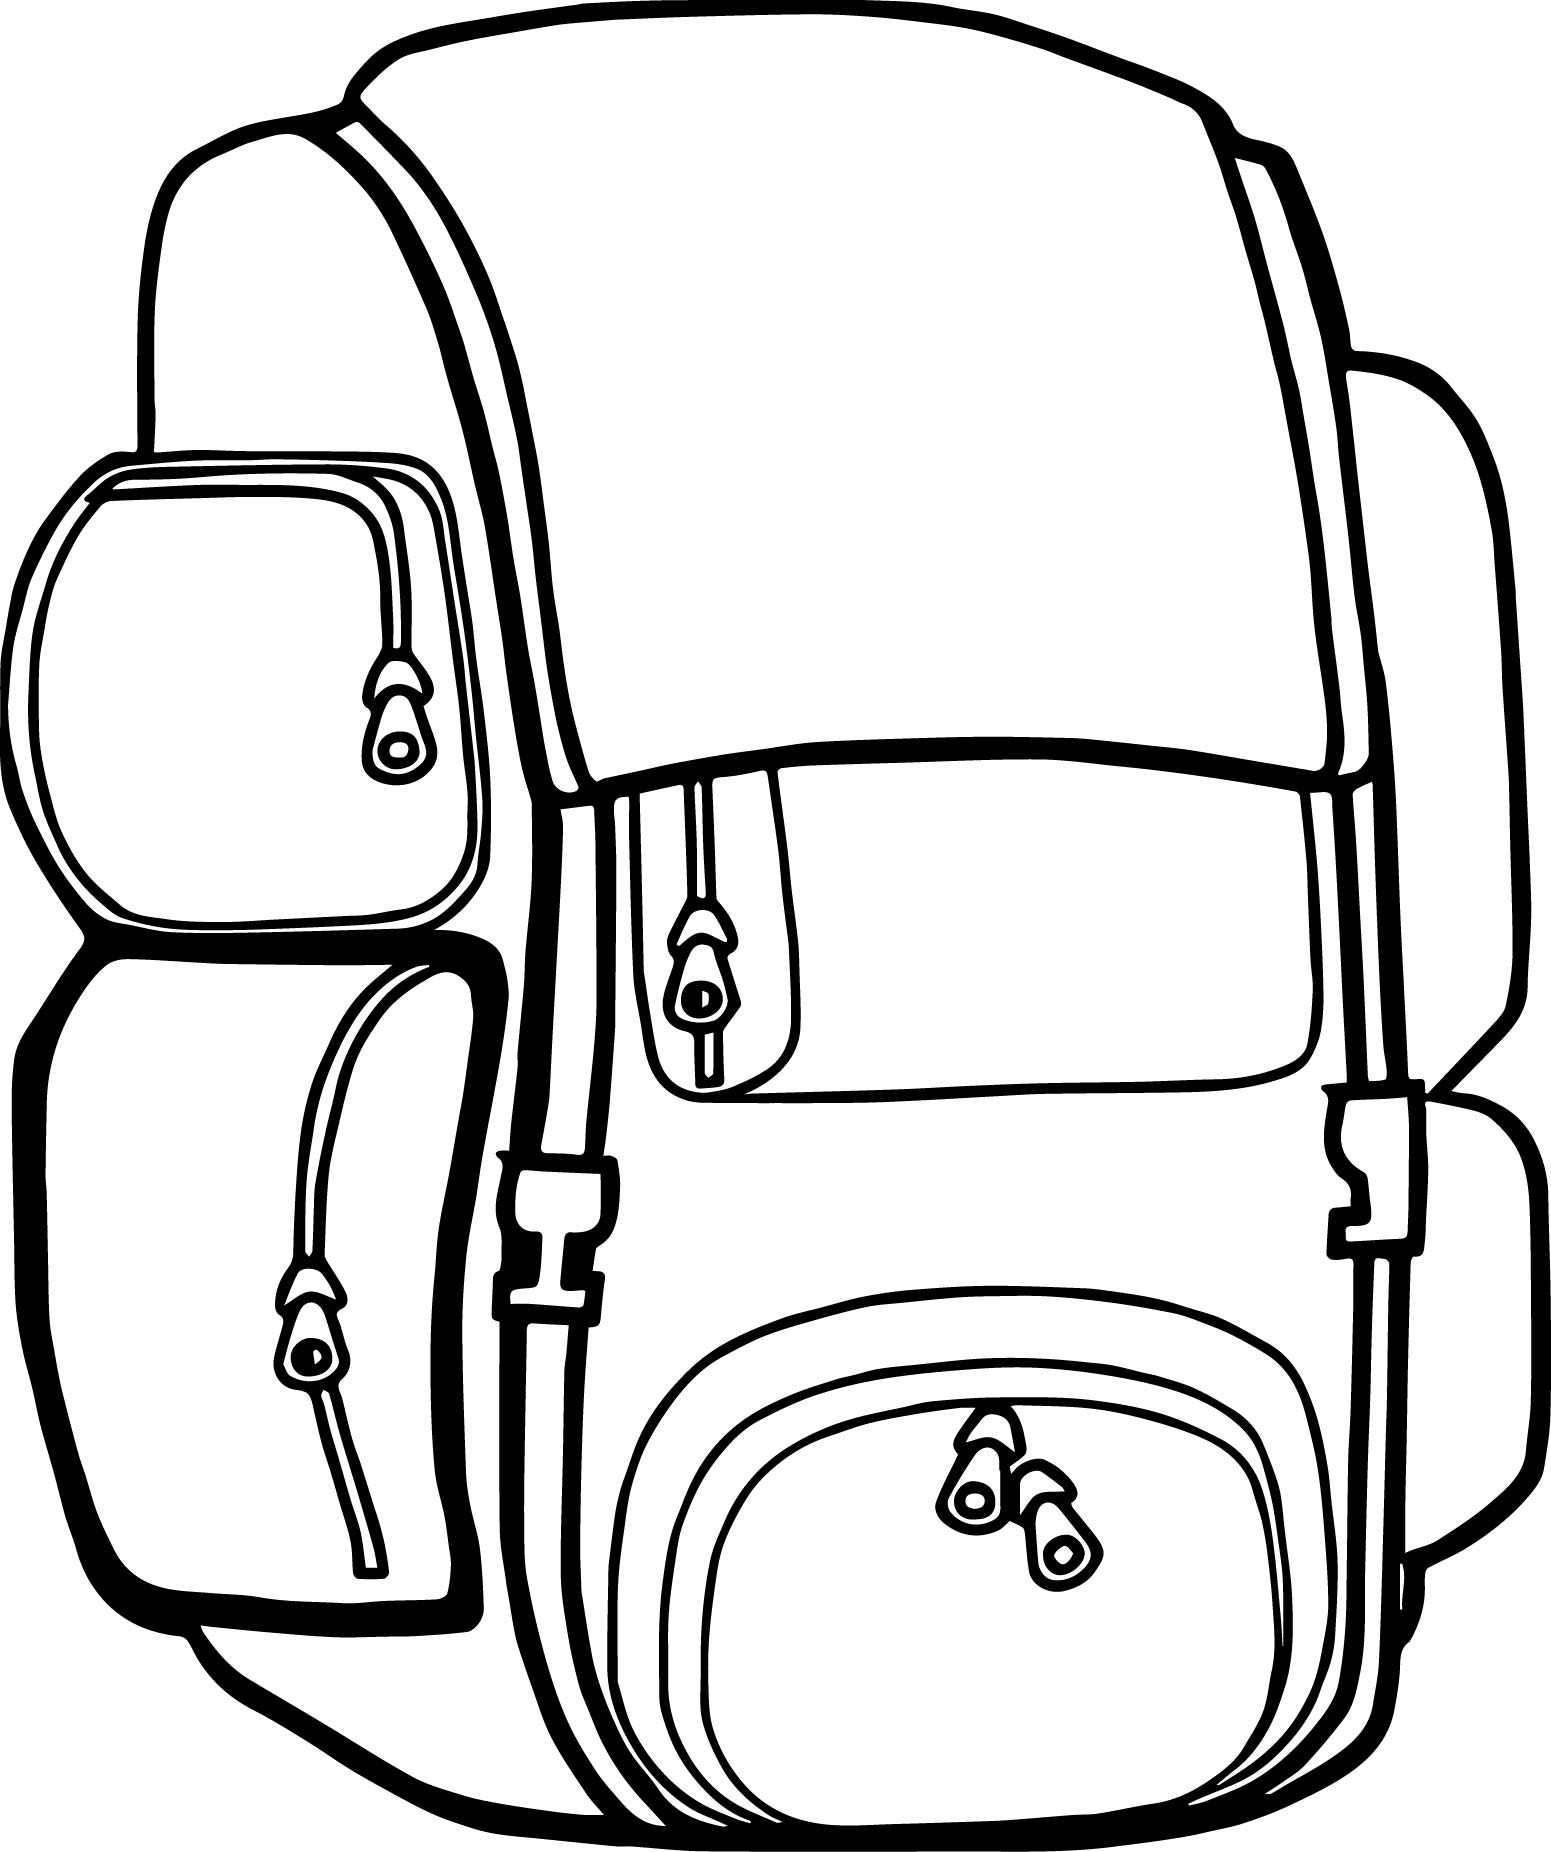 Coloring Book Bag  Free Coloring Pages For Girls Minion Backpacks For School